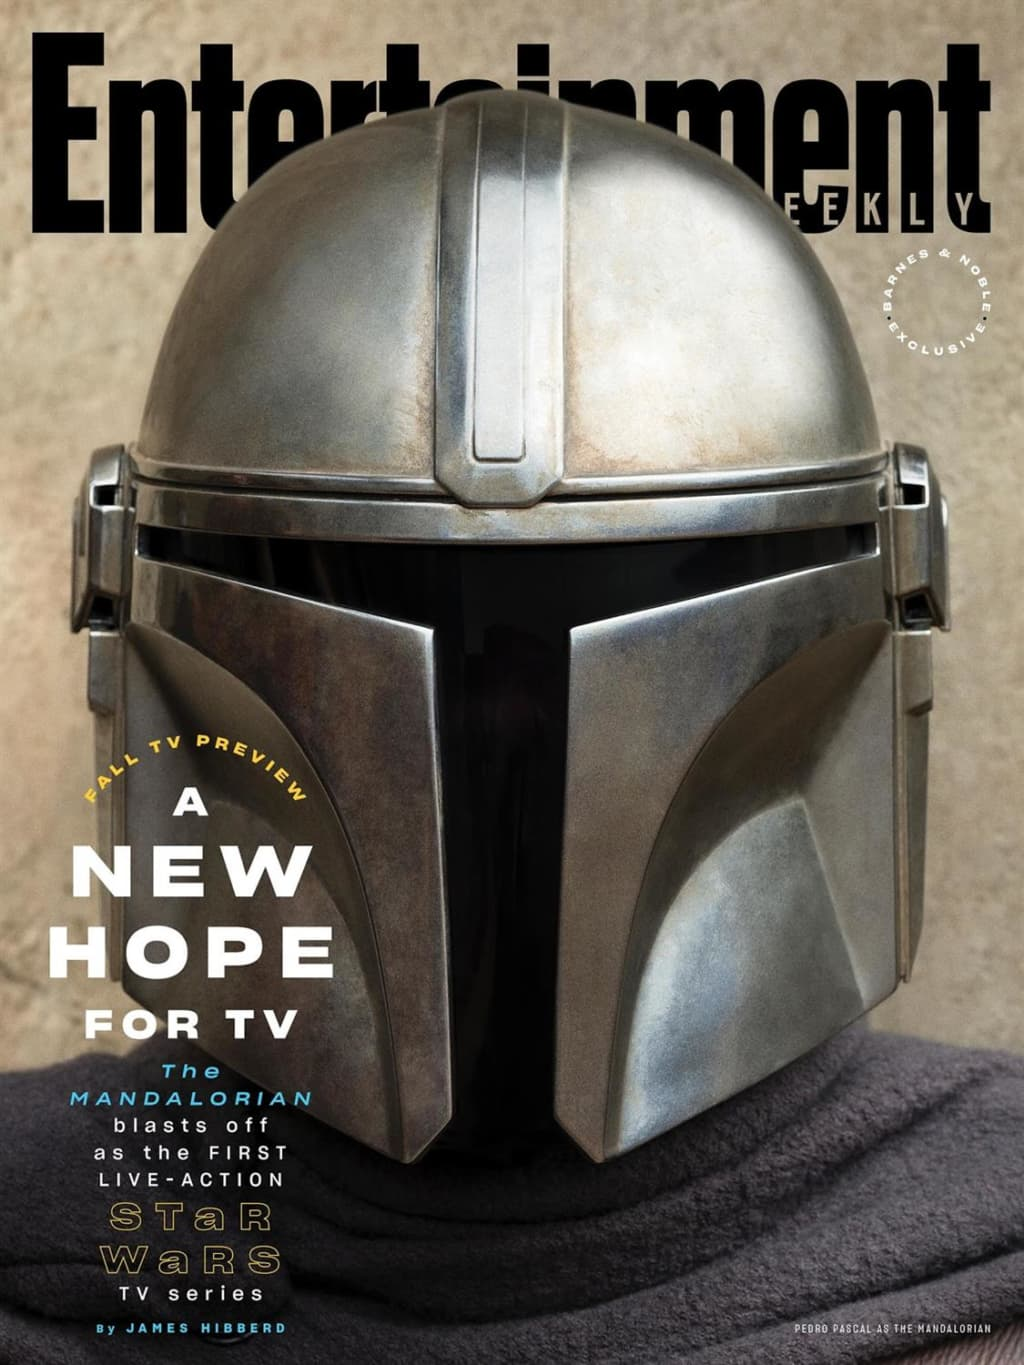 The Mandalorian Previewed In Entertainment Weekly With New Photos Creative Team Interviews Laughingplace Com